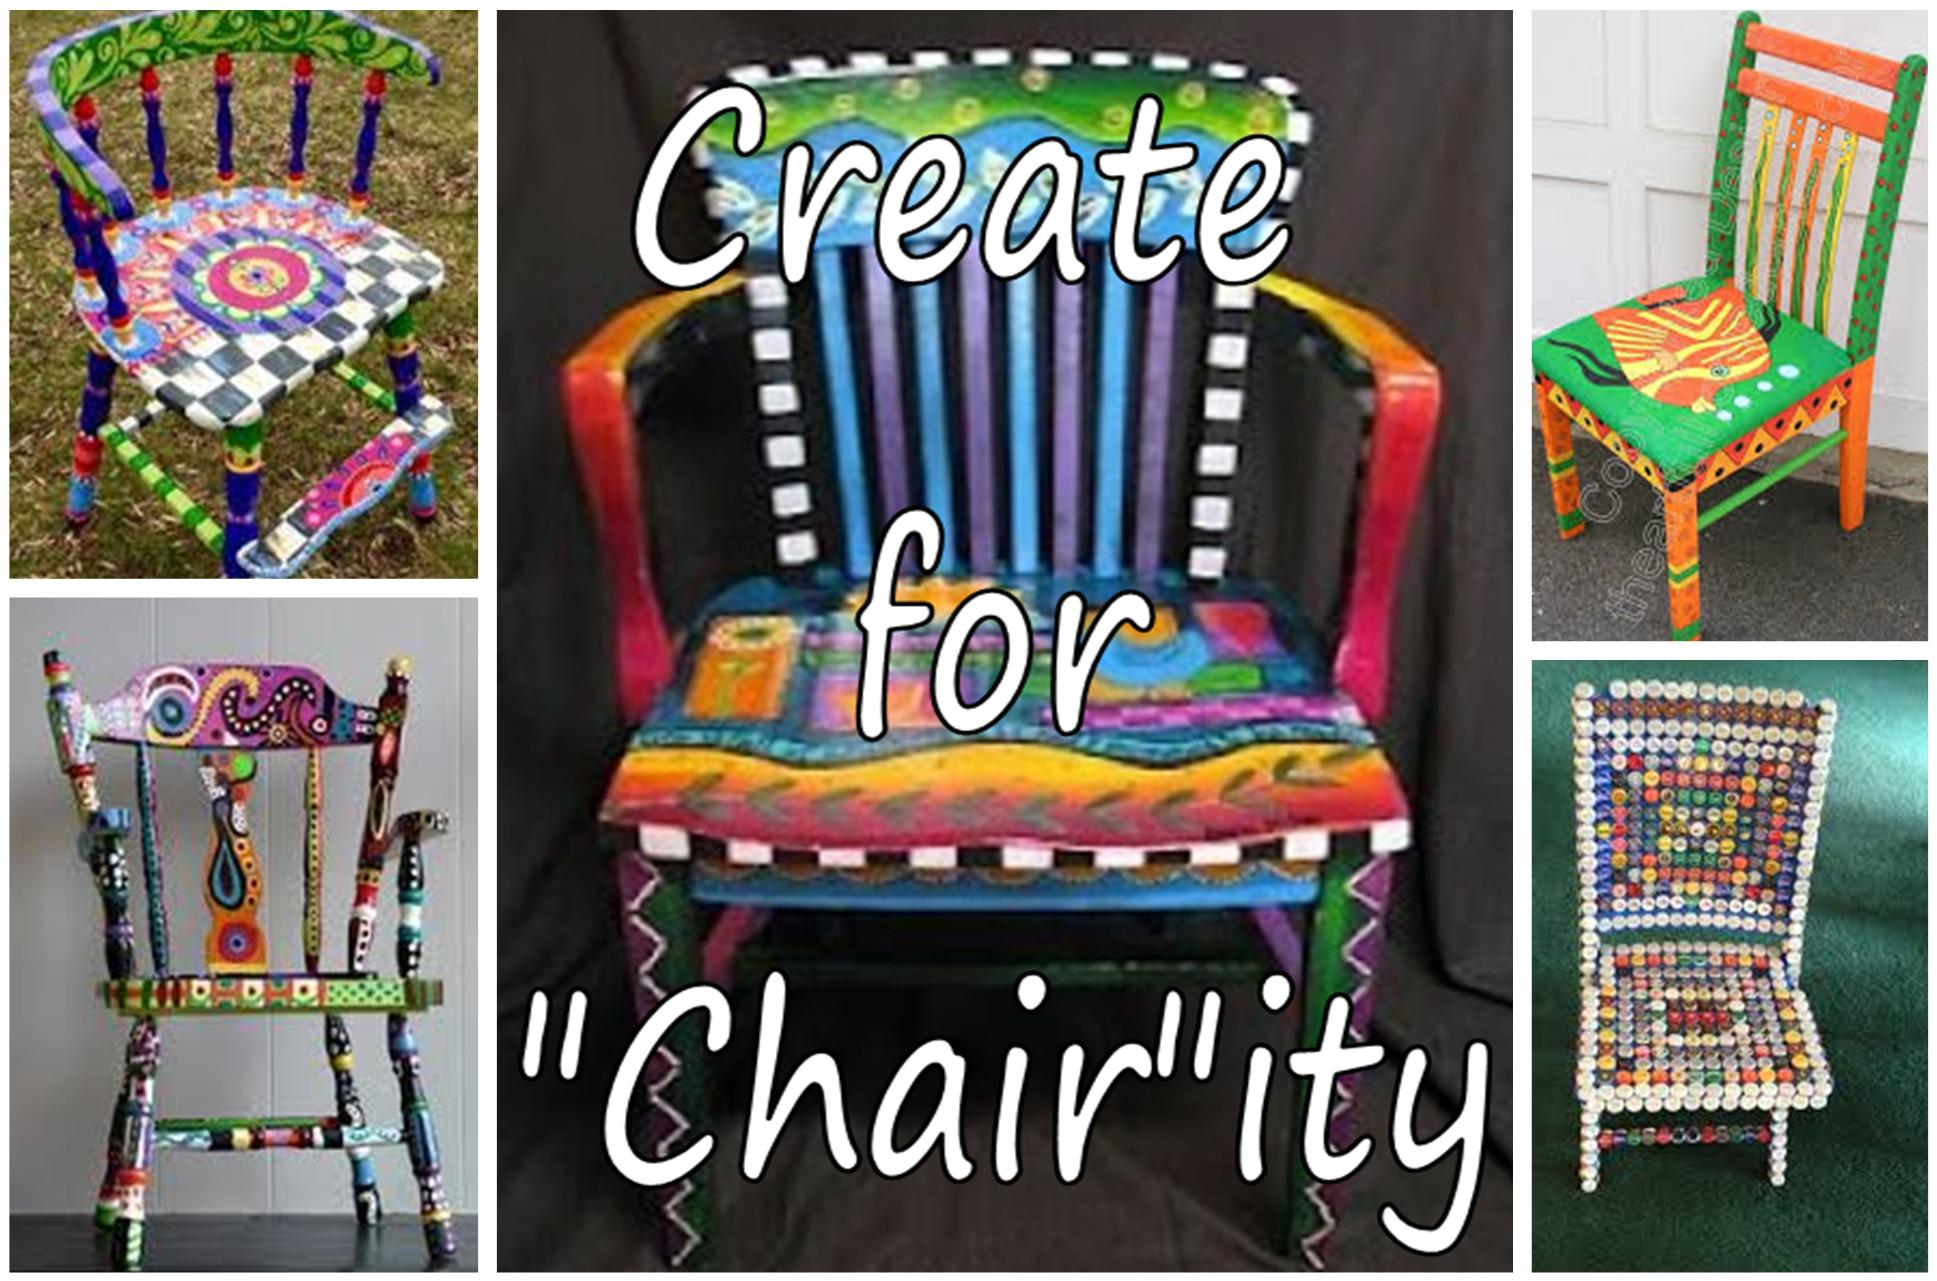 Chair-ity Reception & Auction Information